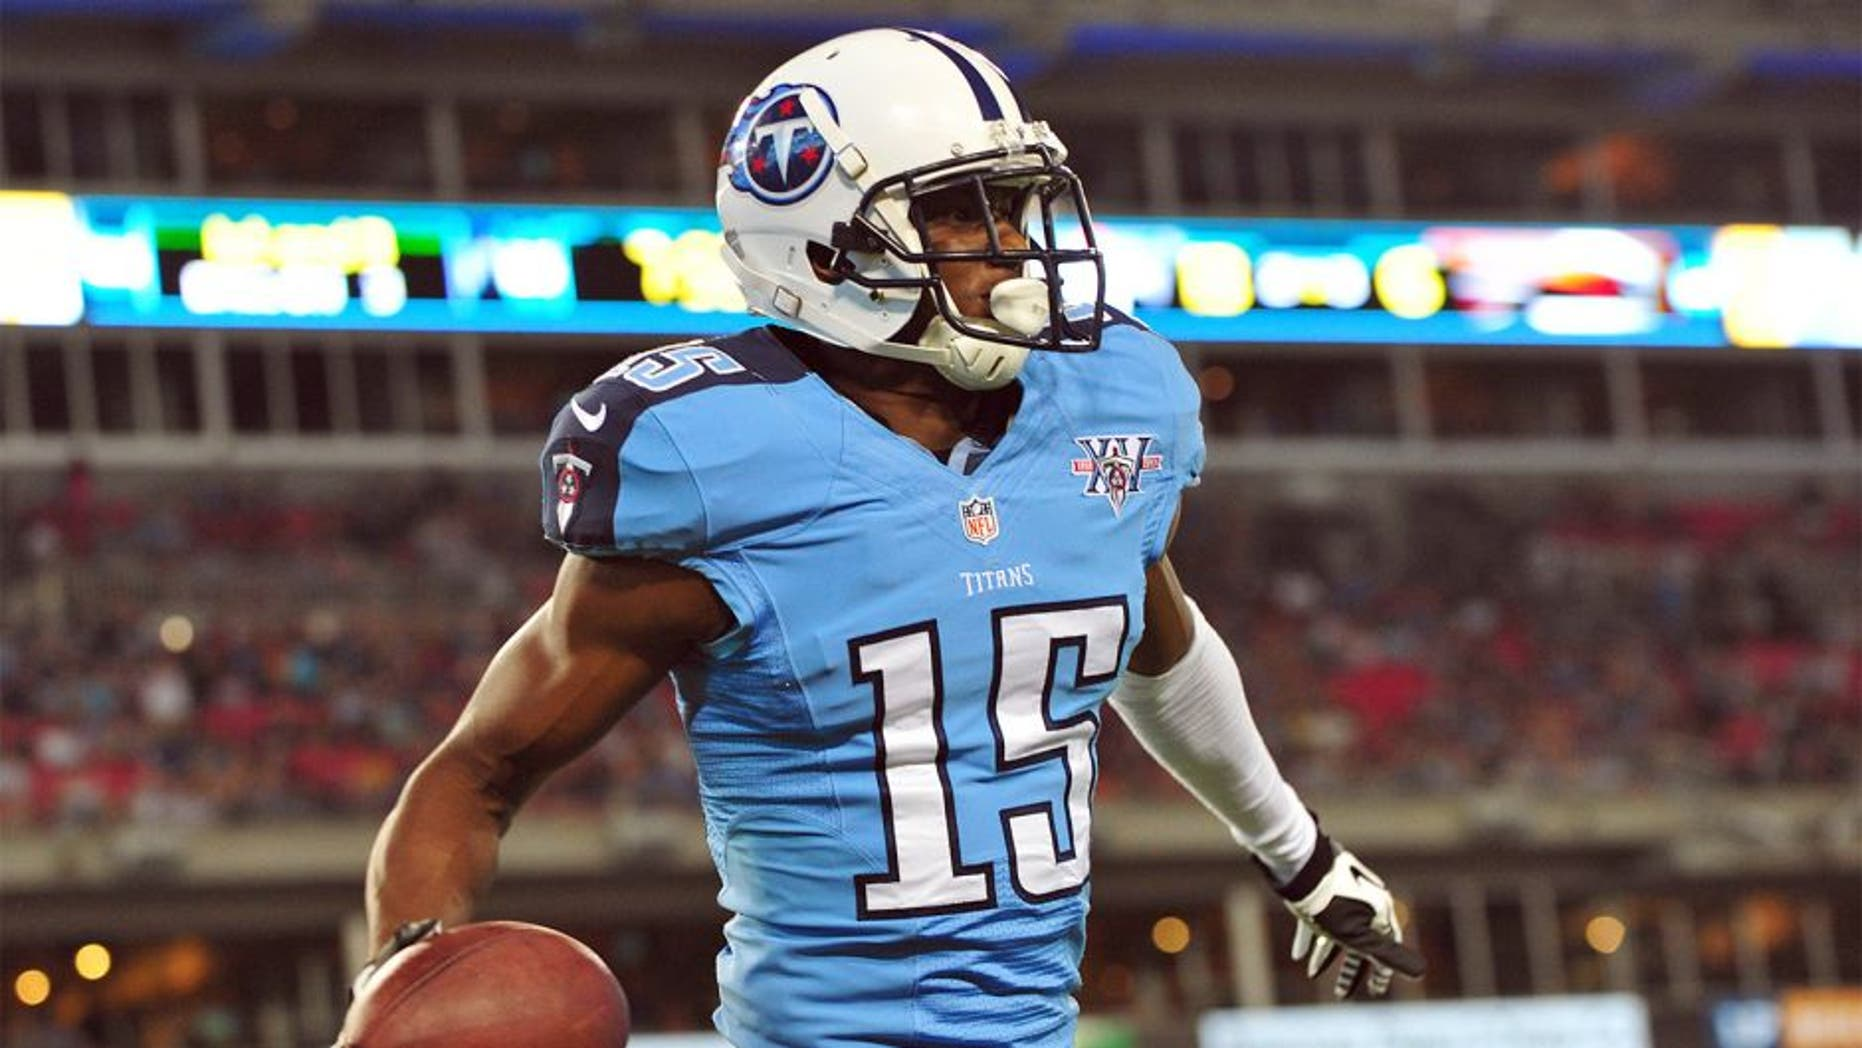 Aug 24, 2013; Nashville, TN, USA; Tennessee Titans wide receiver Justin Hunter (15) celebrates after scoring a touchdown against the Atlanta Falcons during the second half at LP Field. The Titans beat the Falcons 27-16. Mandatory Credit: Don McPeak-USA TODAY Sports